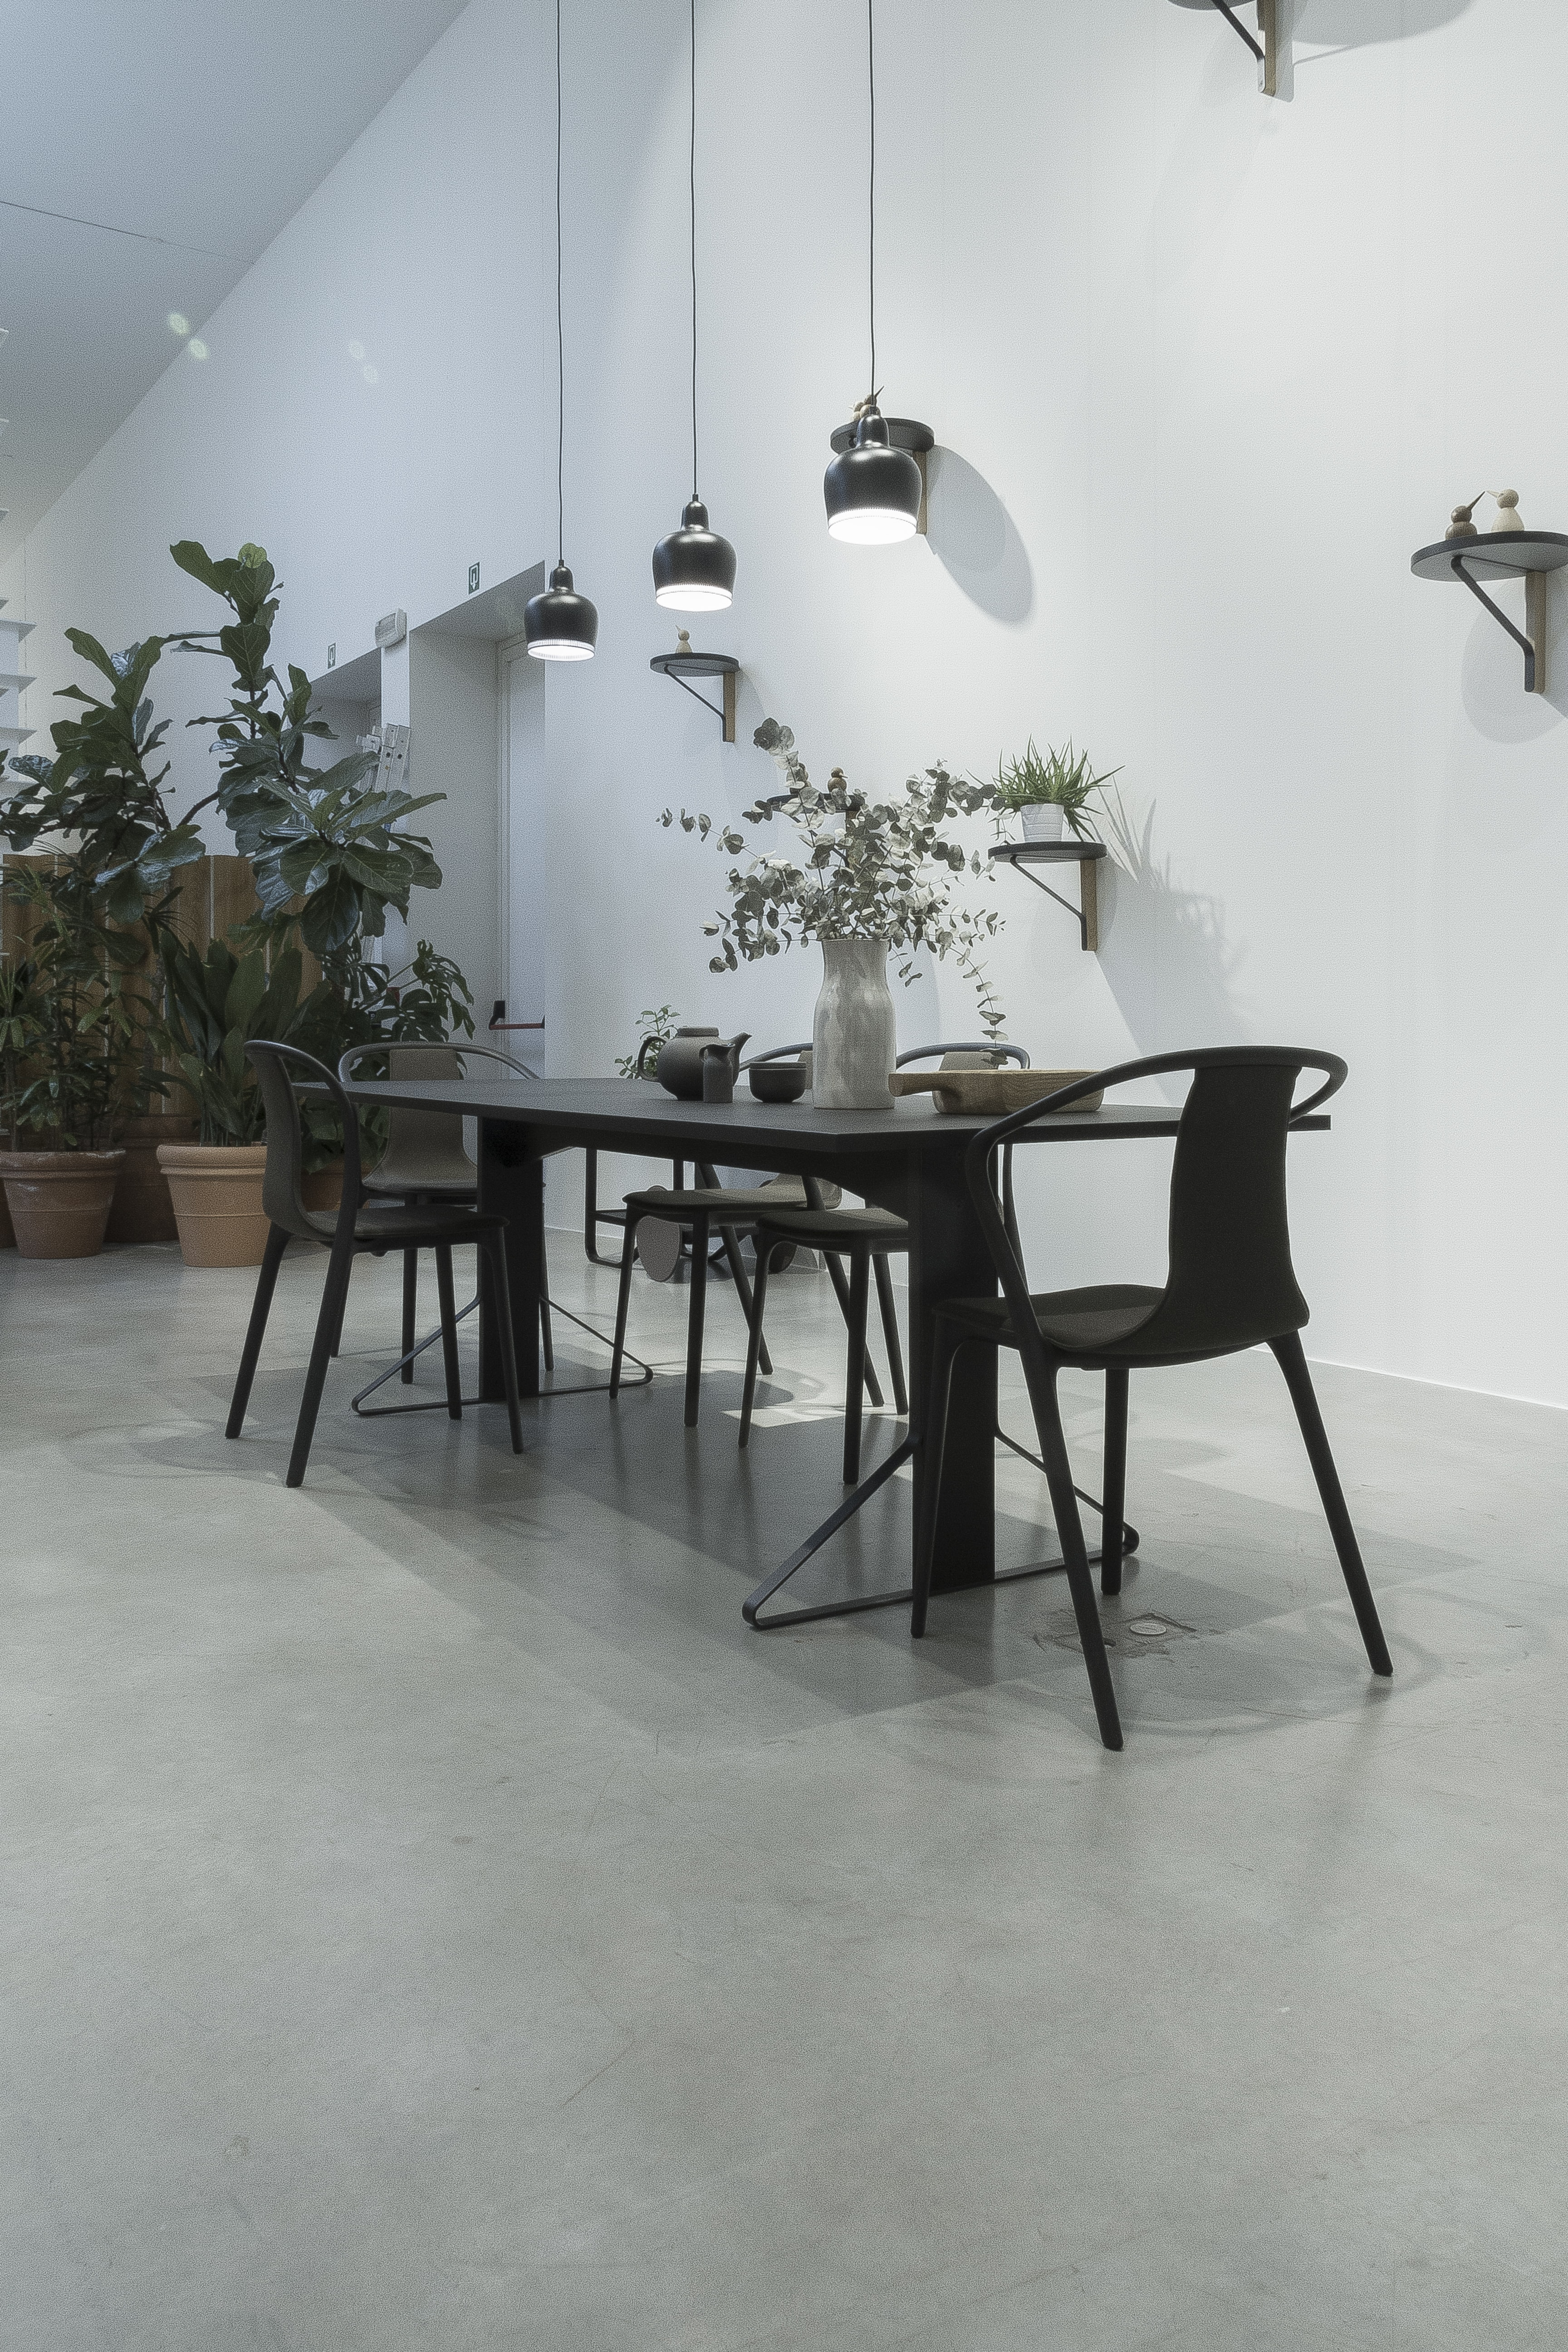 Black Wooden Table And Metal Chairs Near White Wall With Three Pendant Lamps Above Table Photo Free Chair Image On Unsplash